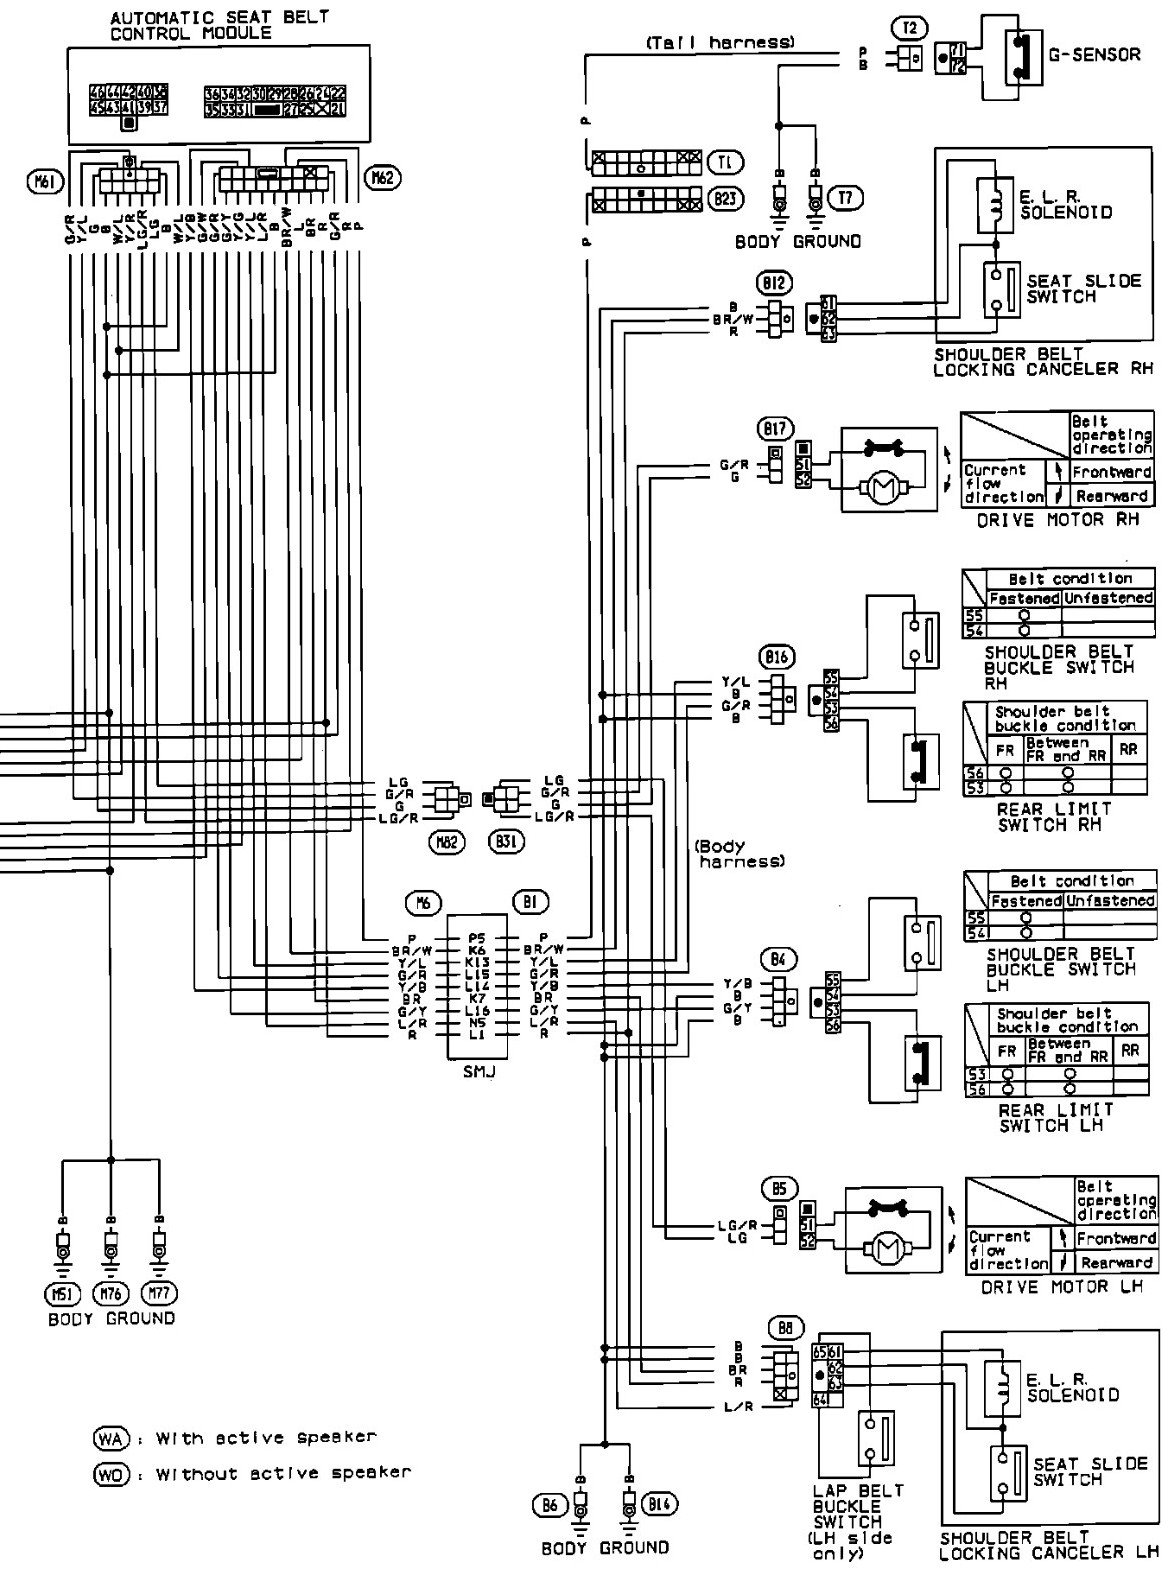 Nissan Seat Diagram Great Design Of Wiring 240sx Engine Free Image For User Diagrams Cvt